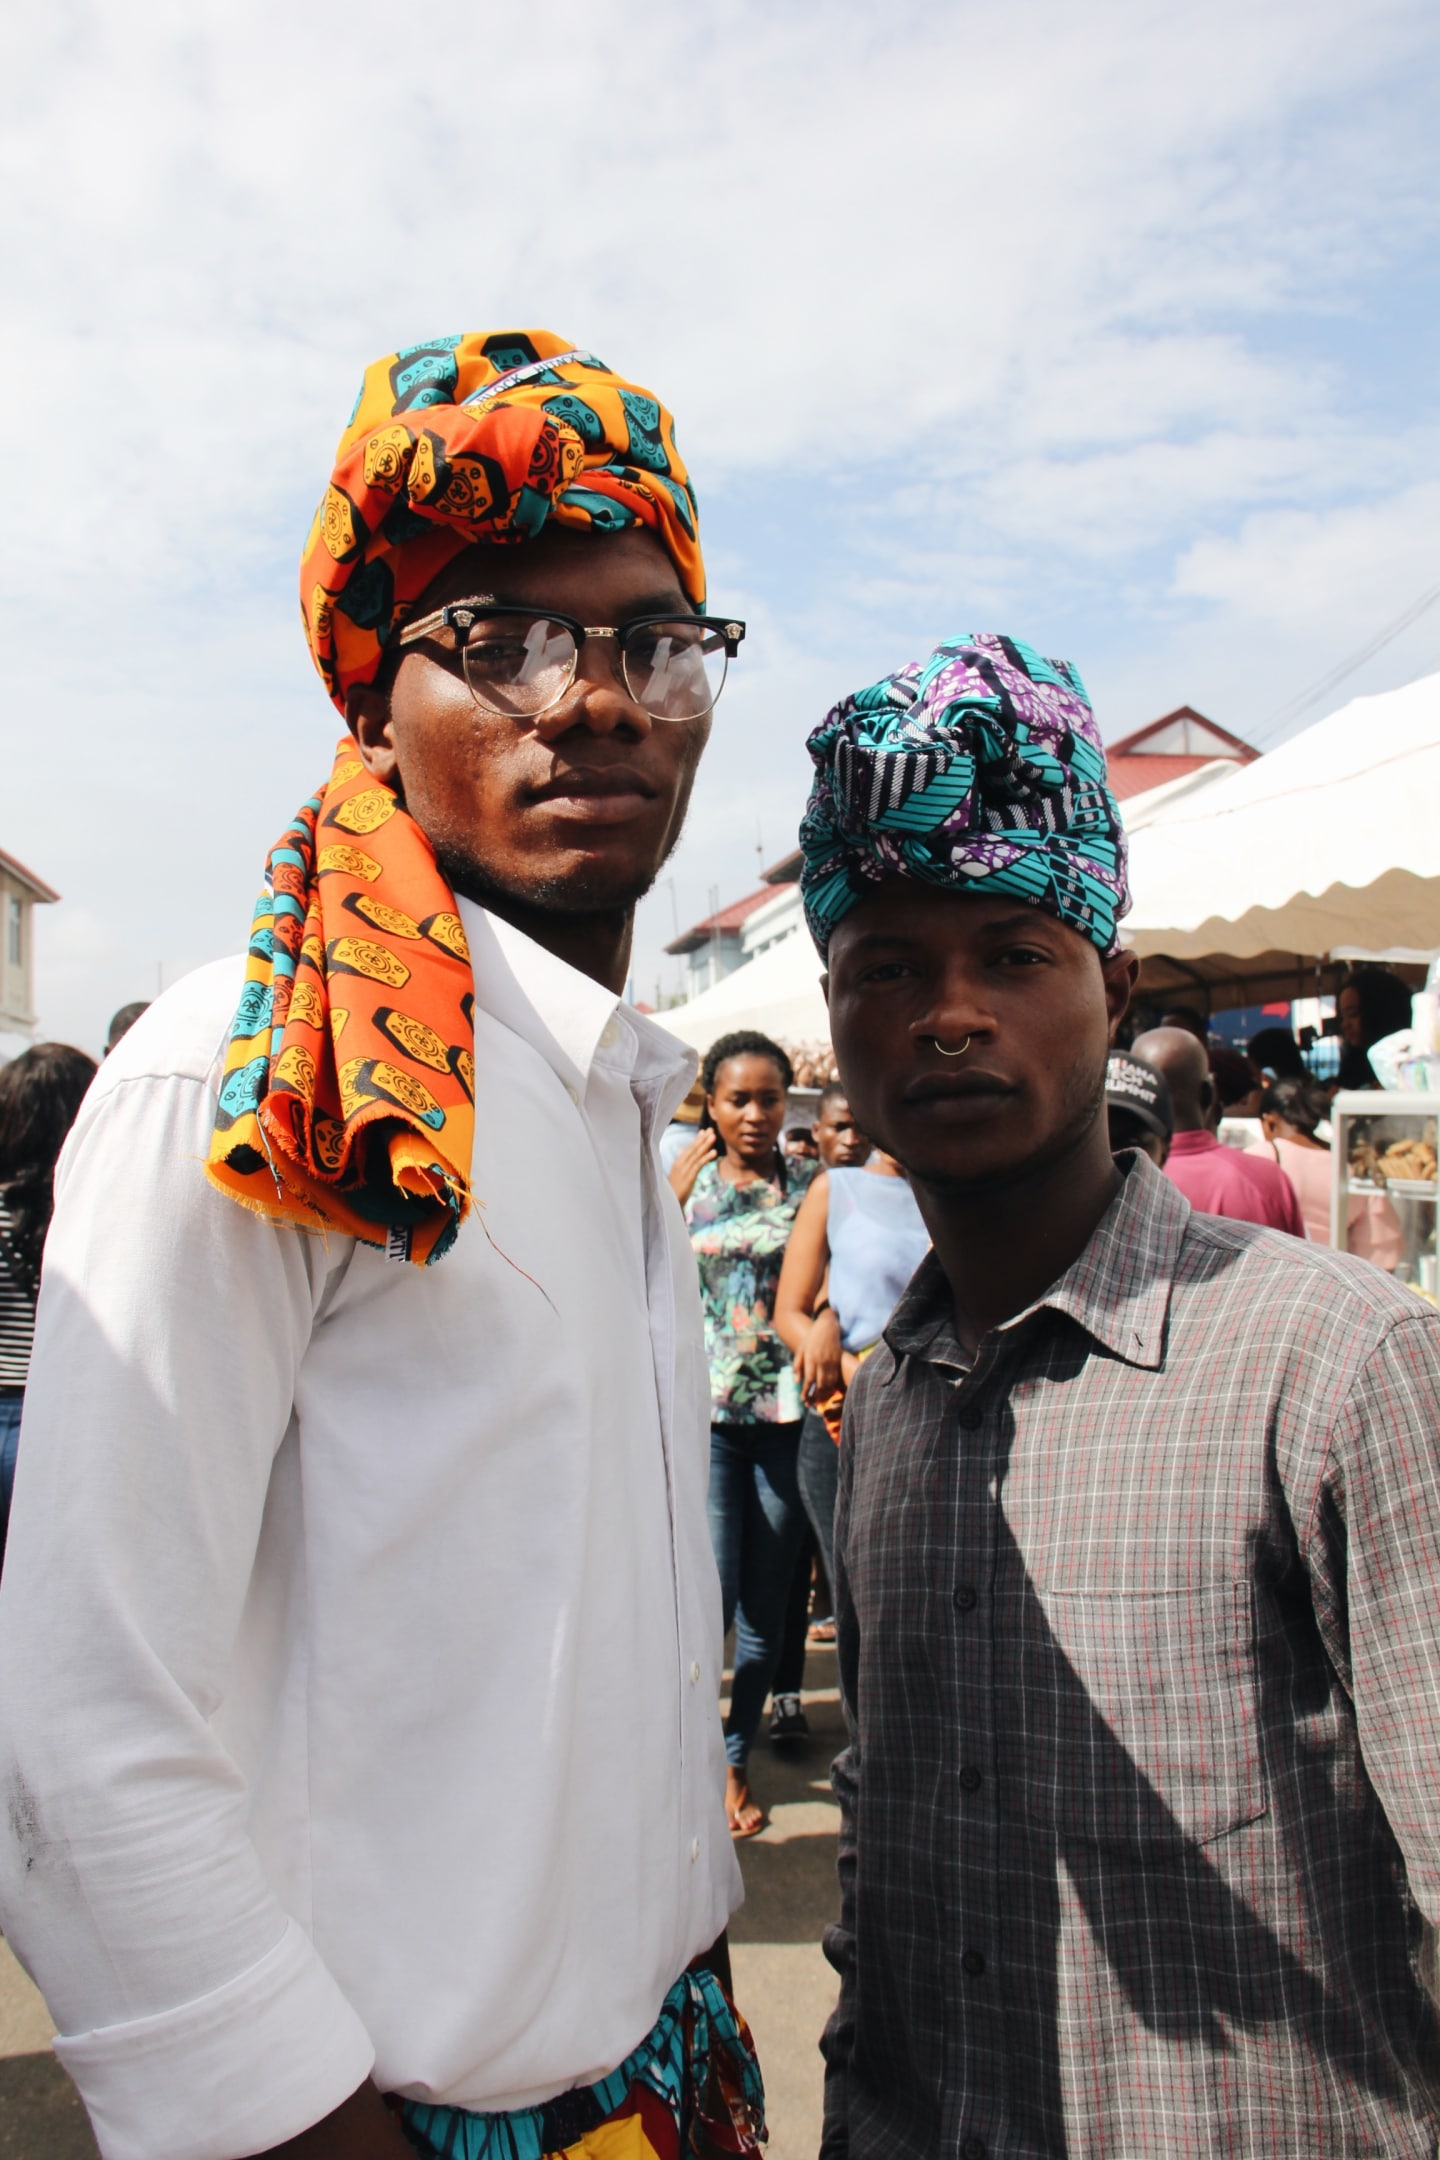 Accra's Chale Wote festival attendees were peak chill elegance